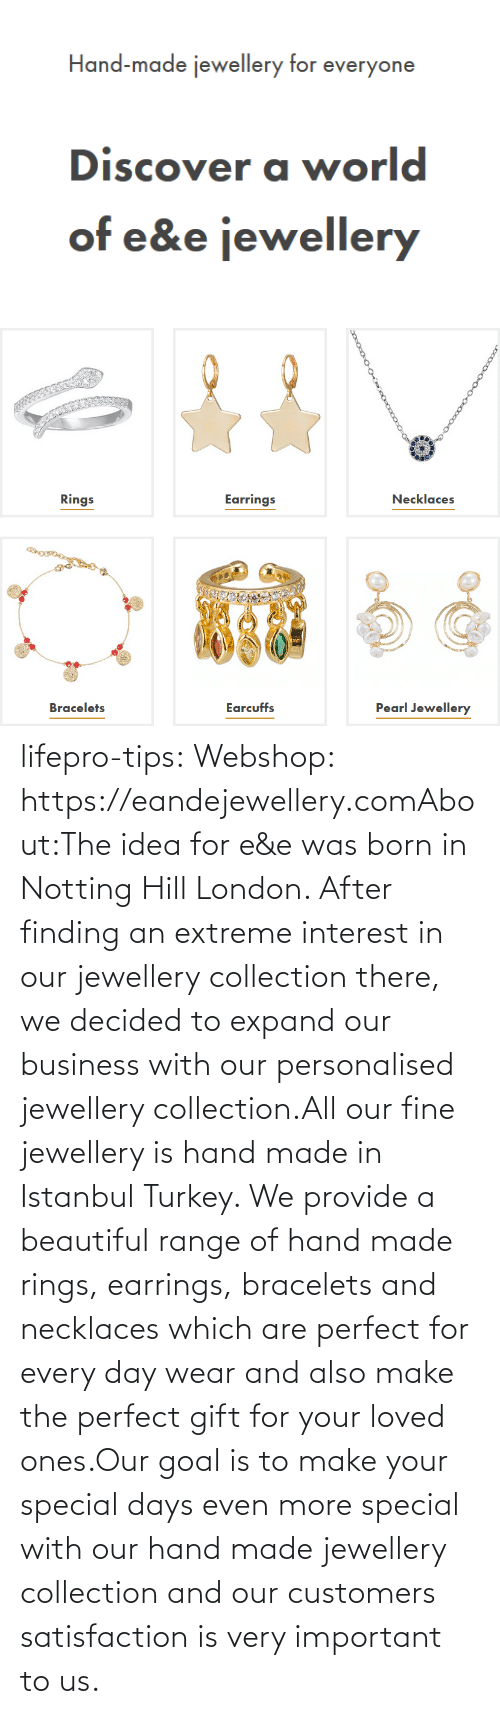 tips: lifepro-tips: Webshop: https://eandejewellery.comAbout:The idea for e&e was born in Notting Hill London. After  finding an extreme interest in our jewellery collection there, we  decided to expand our business with our personalised jewellery  collection.All our fine jewellery is hand made in Istanbul Turkey. We  provide a beautiful range of hand made rings, earrings, bracelets and  necklaces which are perfect for every day wear and also make the perfect  gift for your loved ones.Our goal is to make your special days even more special with  our hand made jewellery collection and our customers satisfaction is  very important to us.